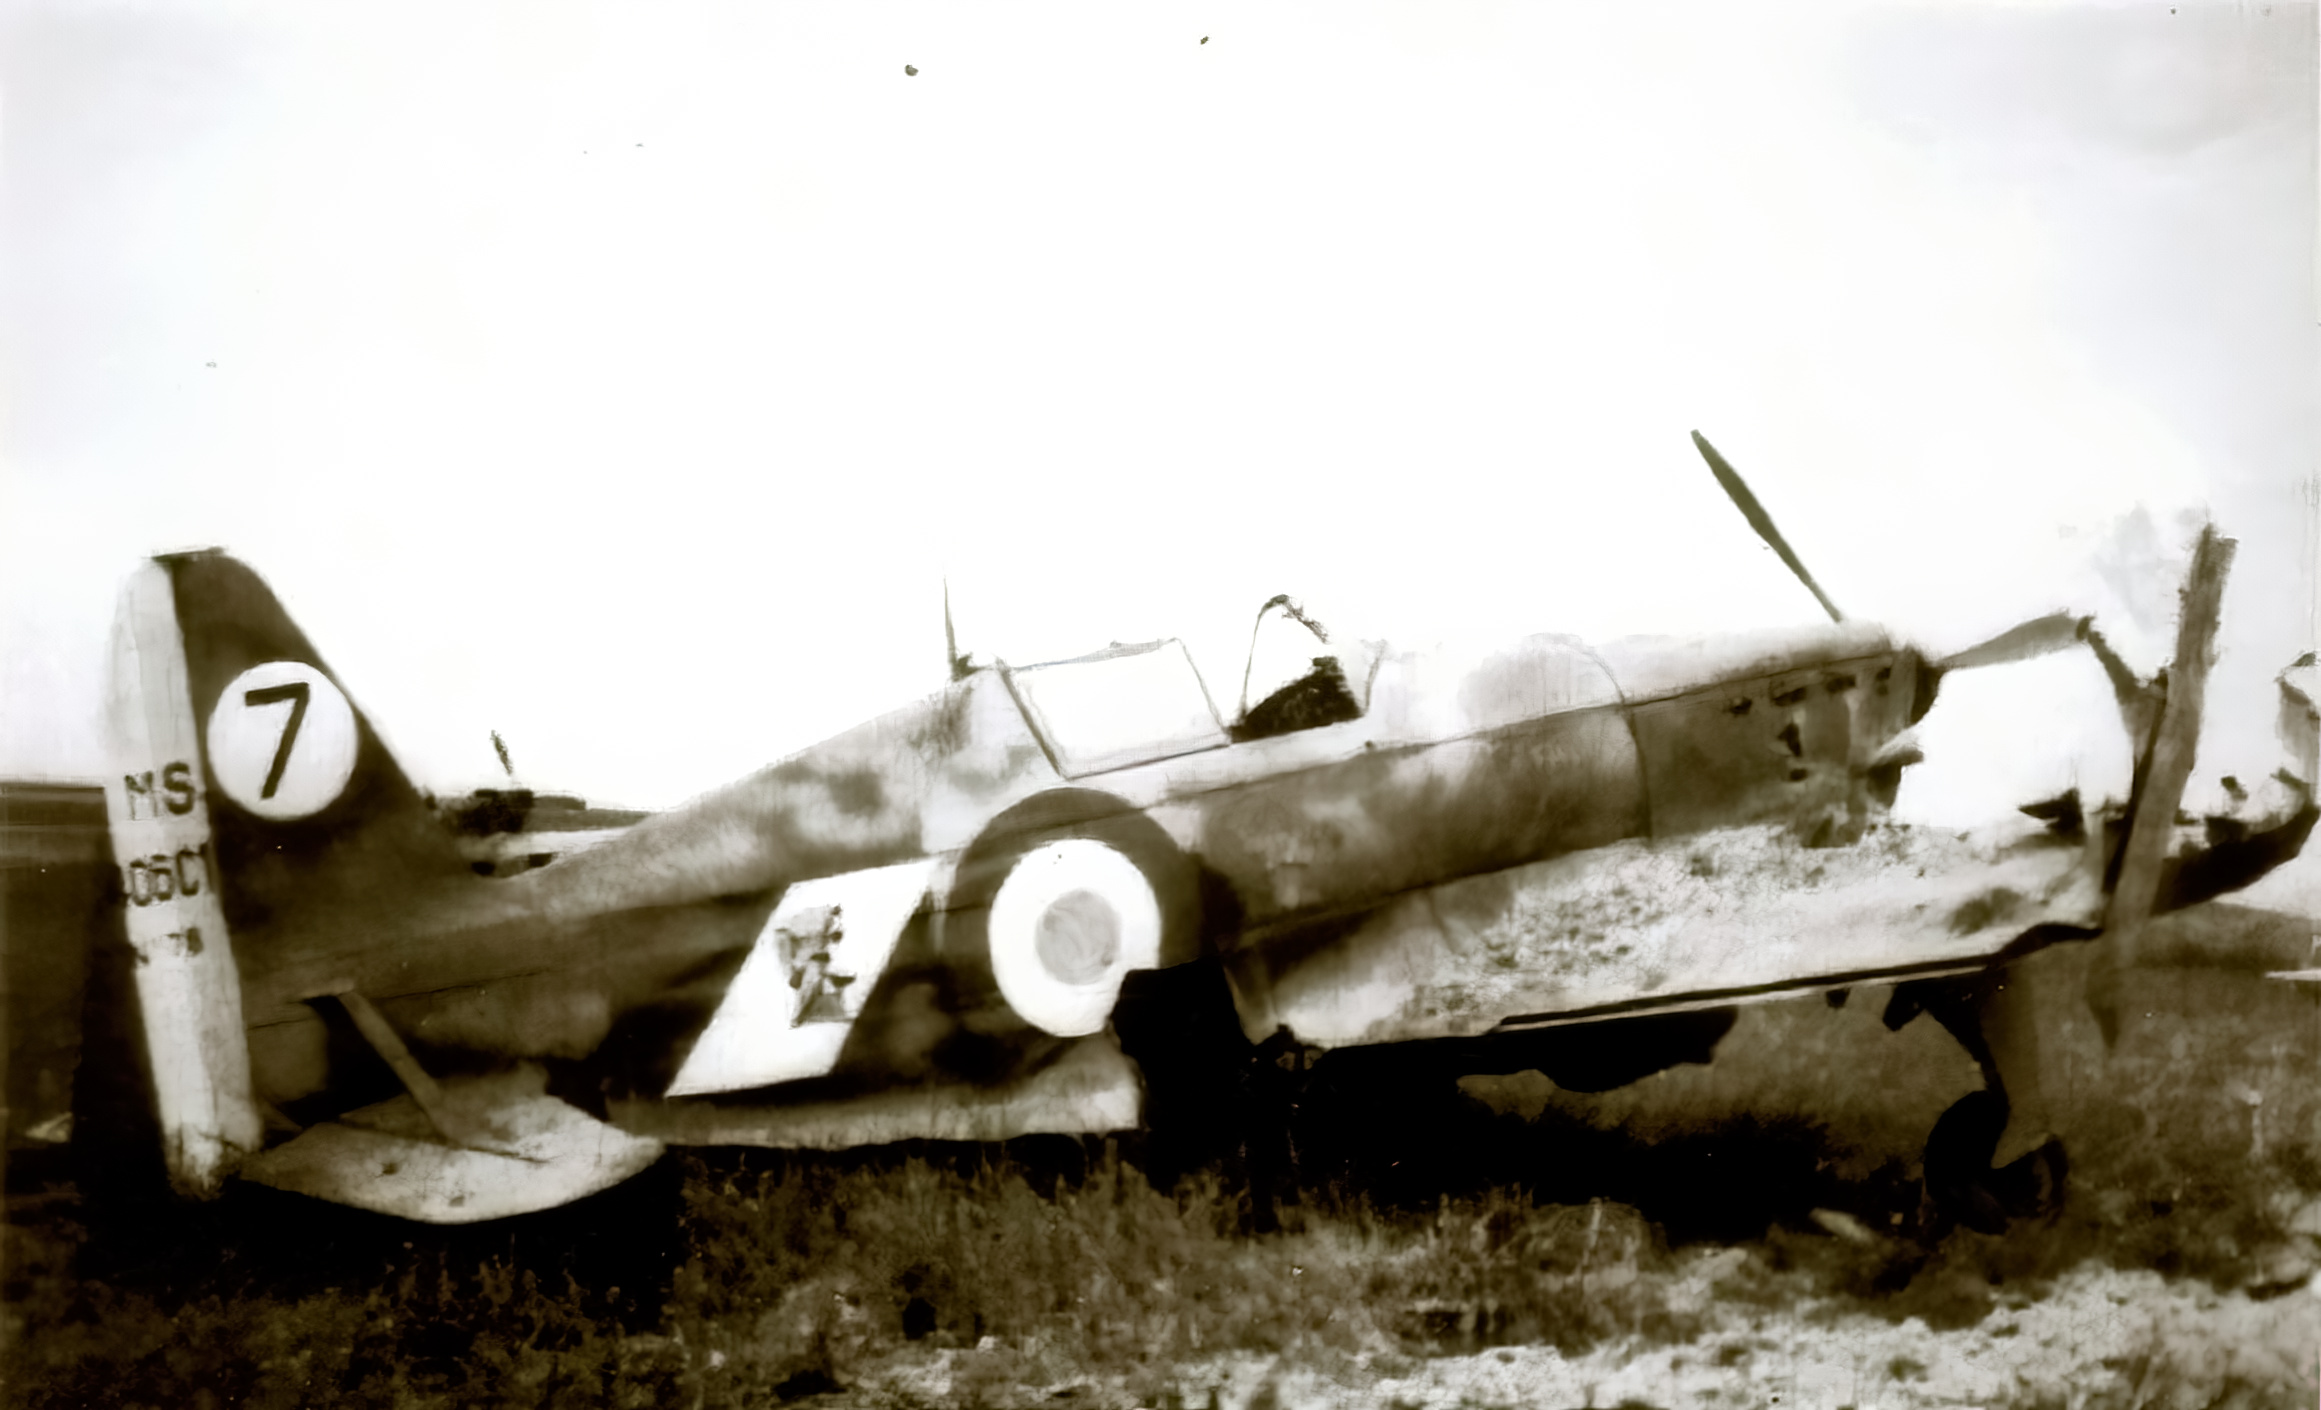 French Airforce Morane Saulnier MS 406C1 Sn78 with damaged right wing France 1940 ebay 03